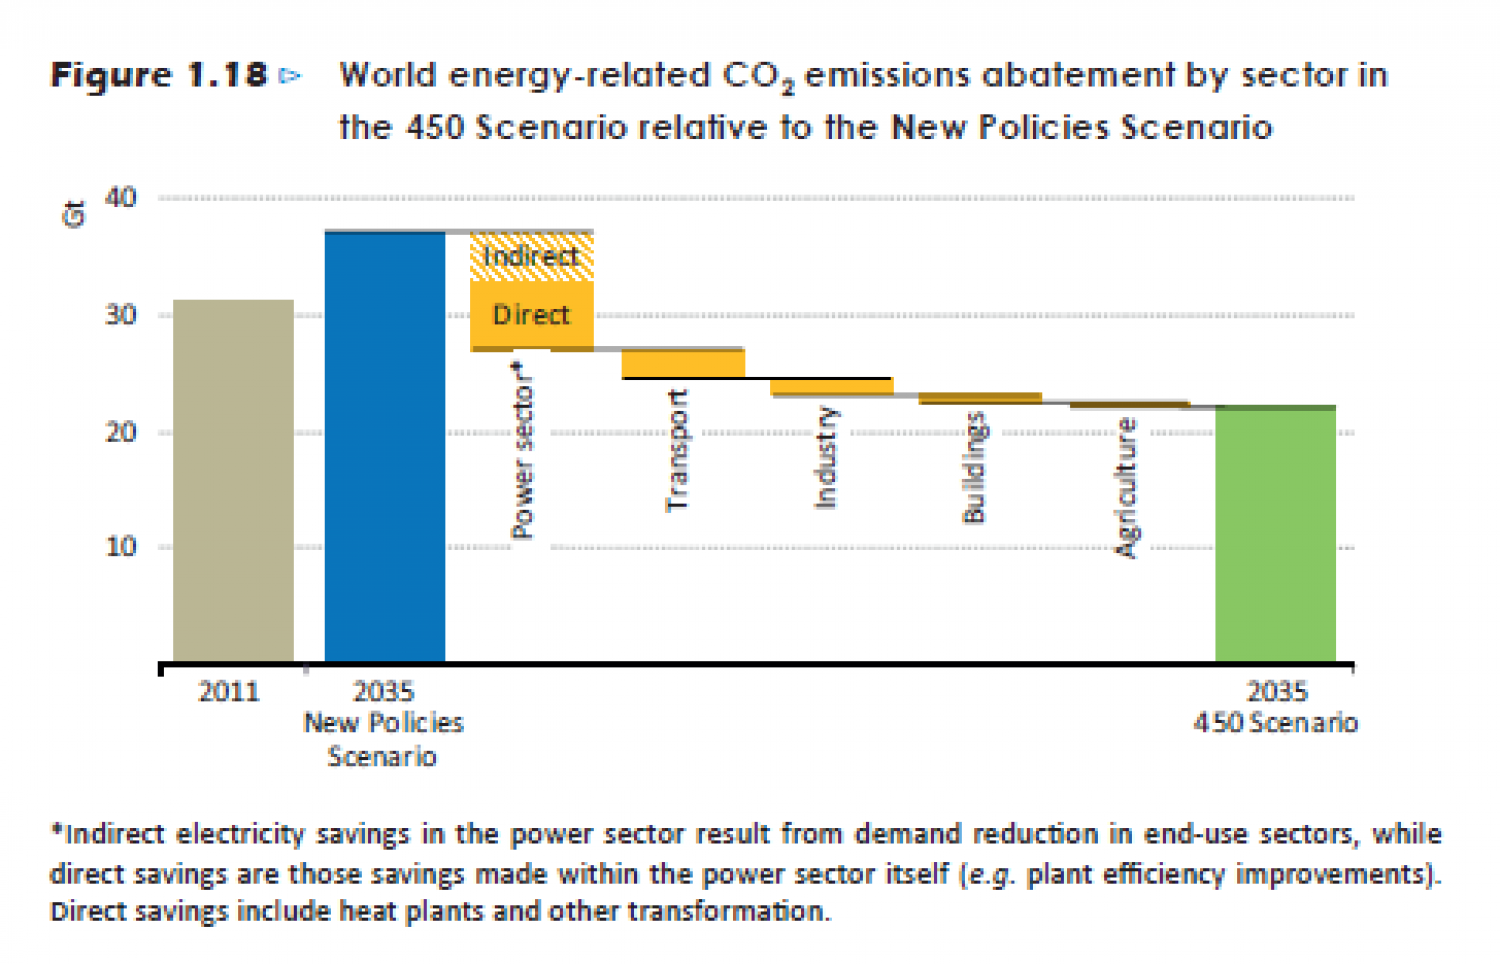 World energy-related CO2 emissions abatement by sector in the 450 Scenario relative to the New Policies Scenario Infographic